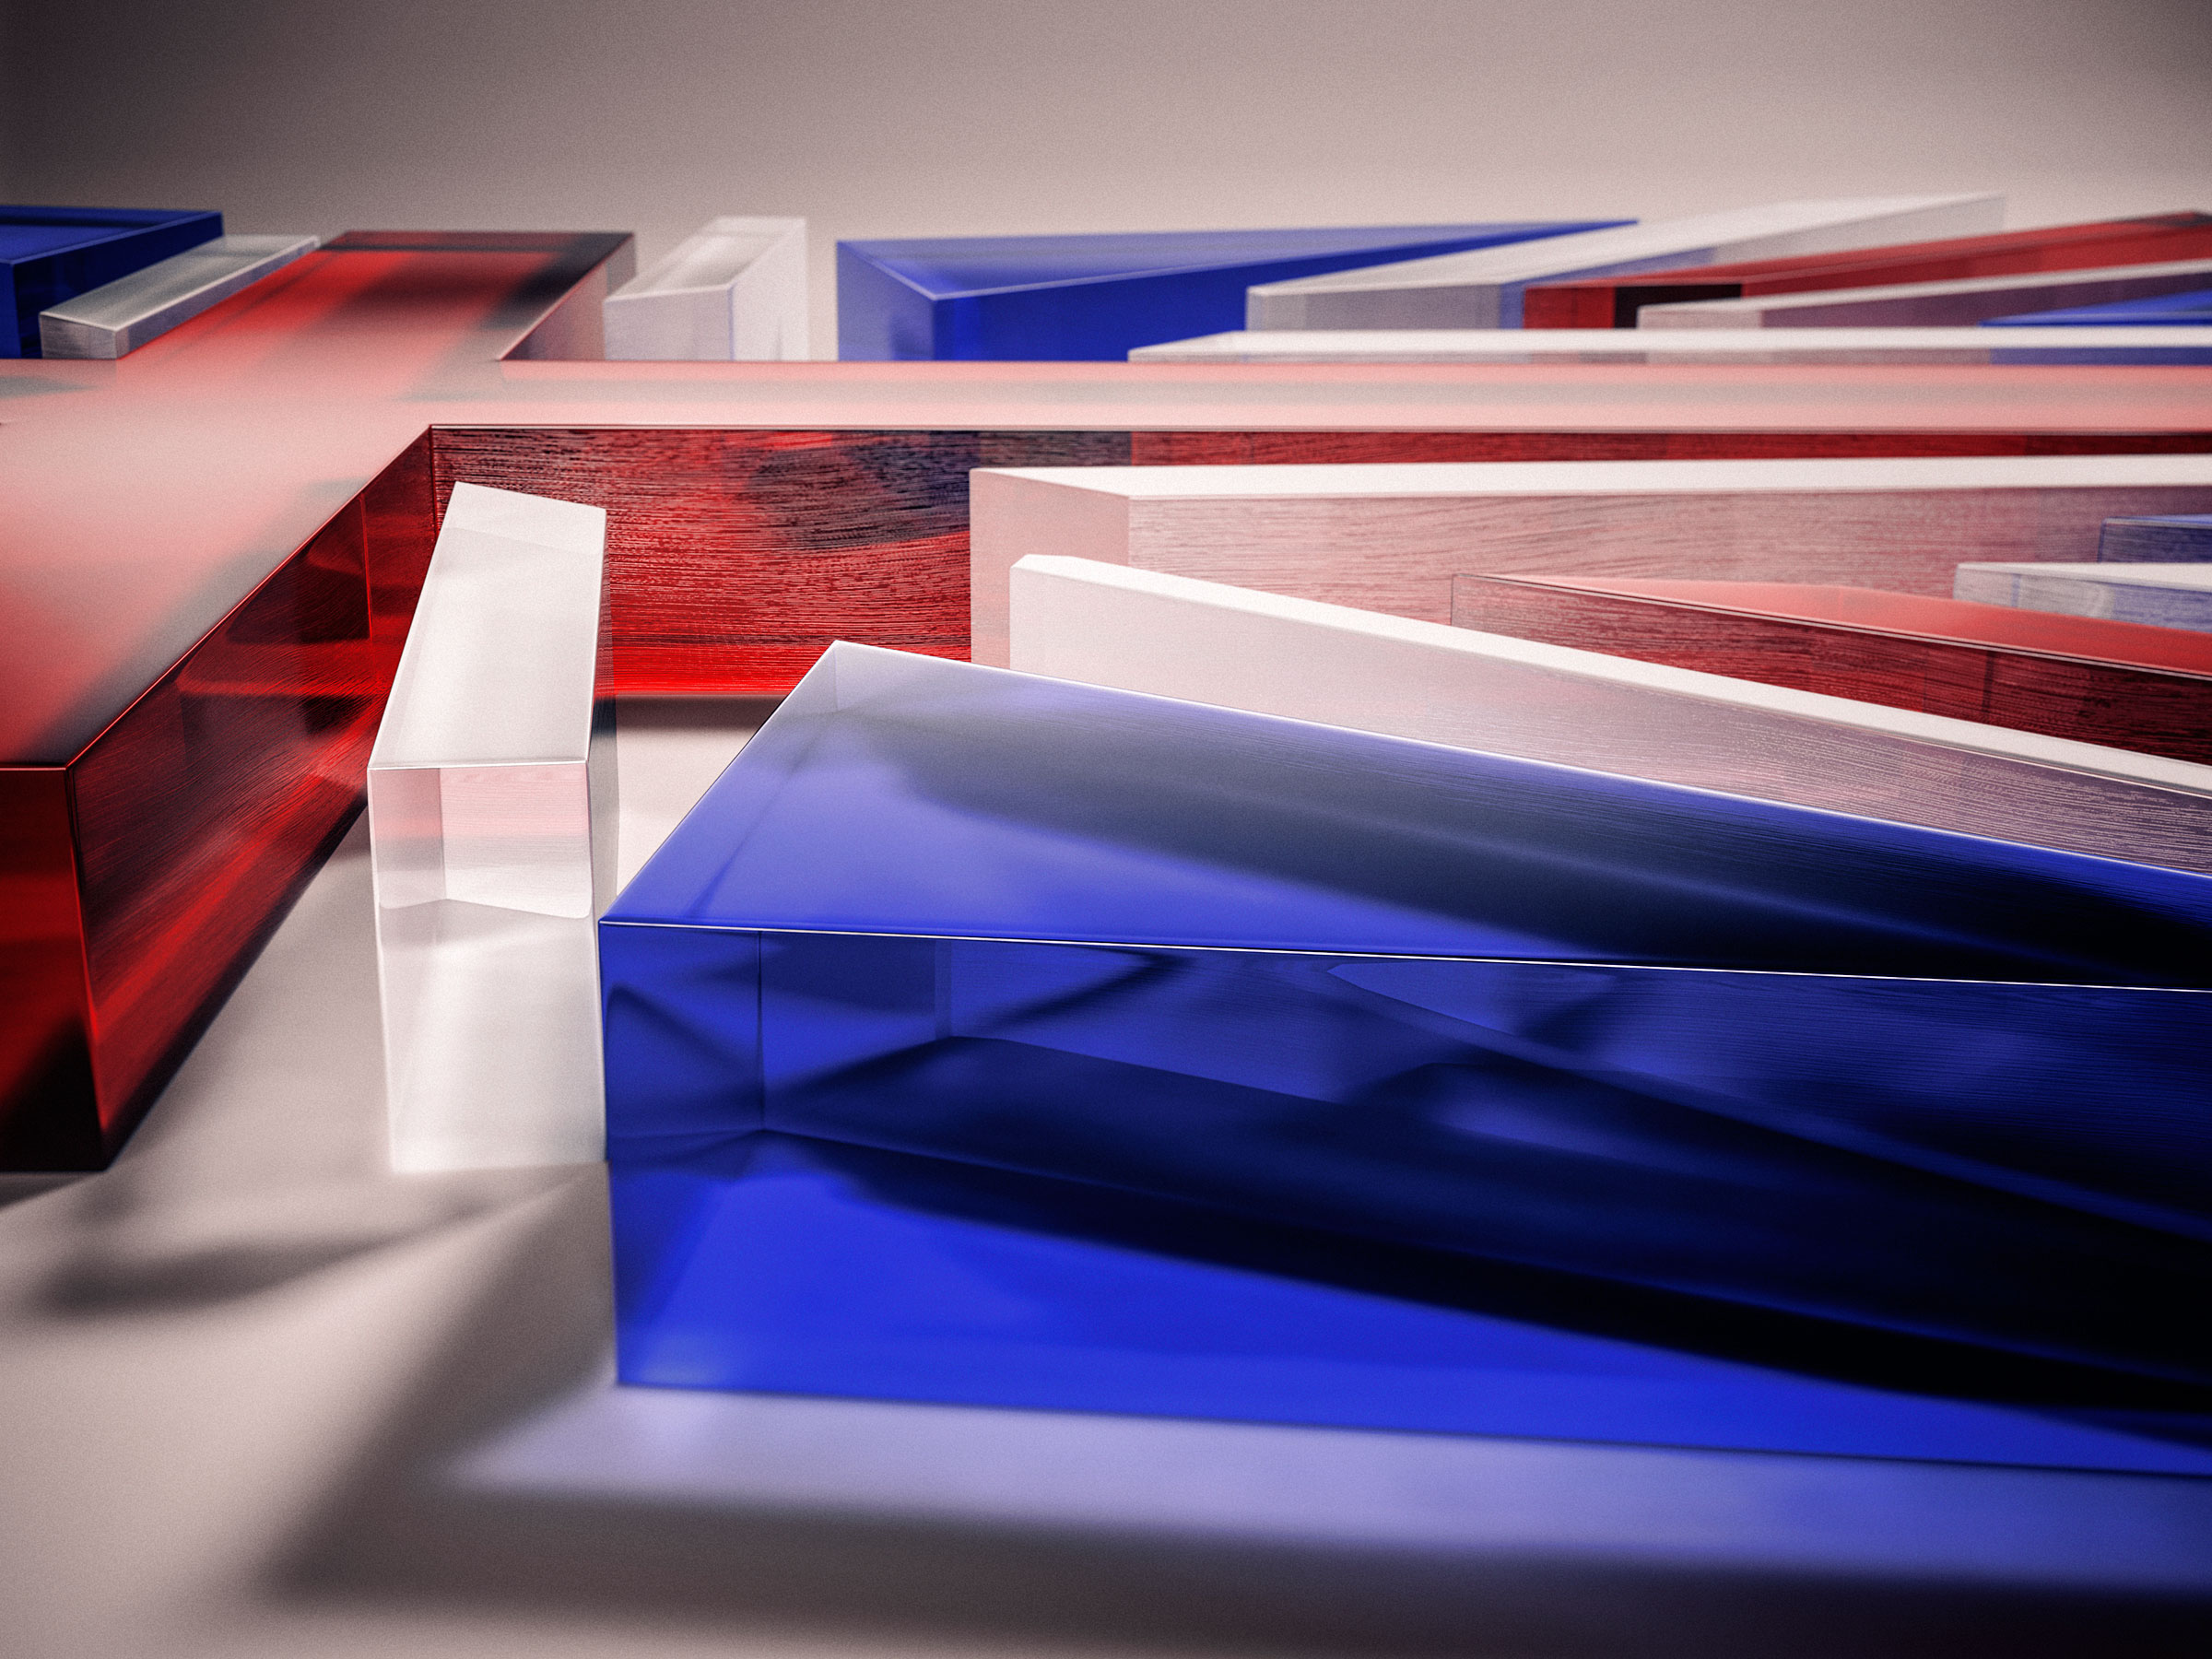 union_jack_tank_cgi_glass_broken_shards_scatter_scottish_independance_03